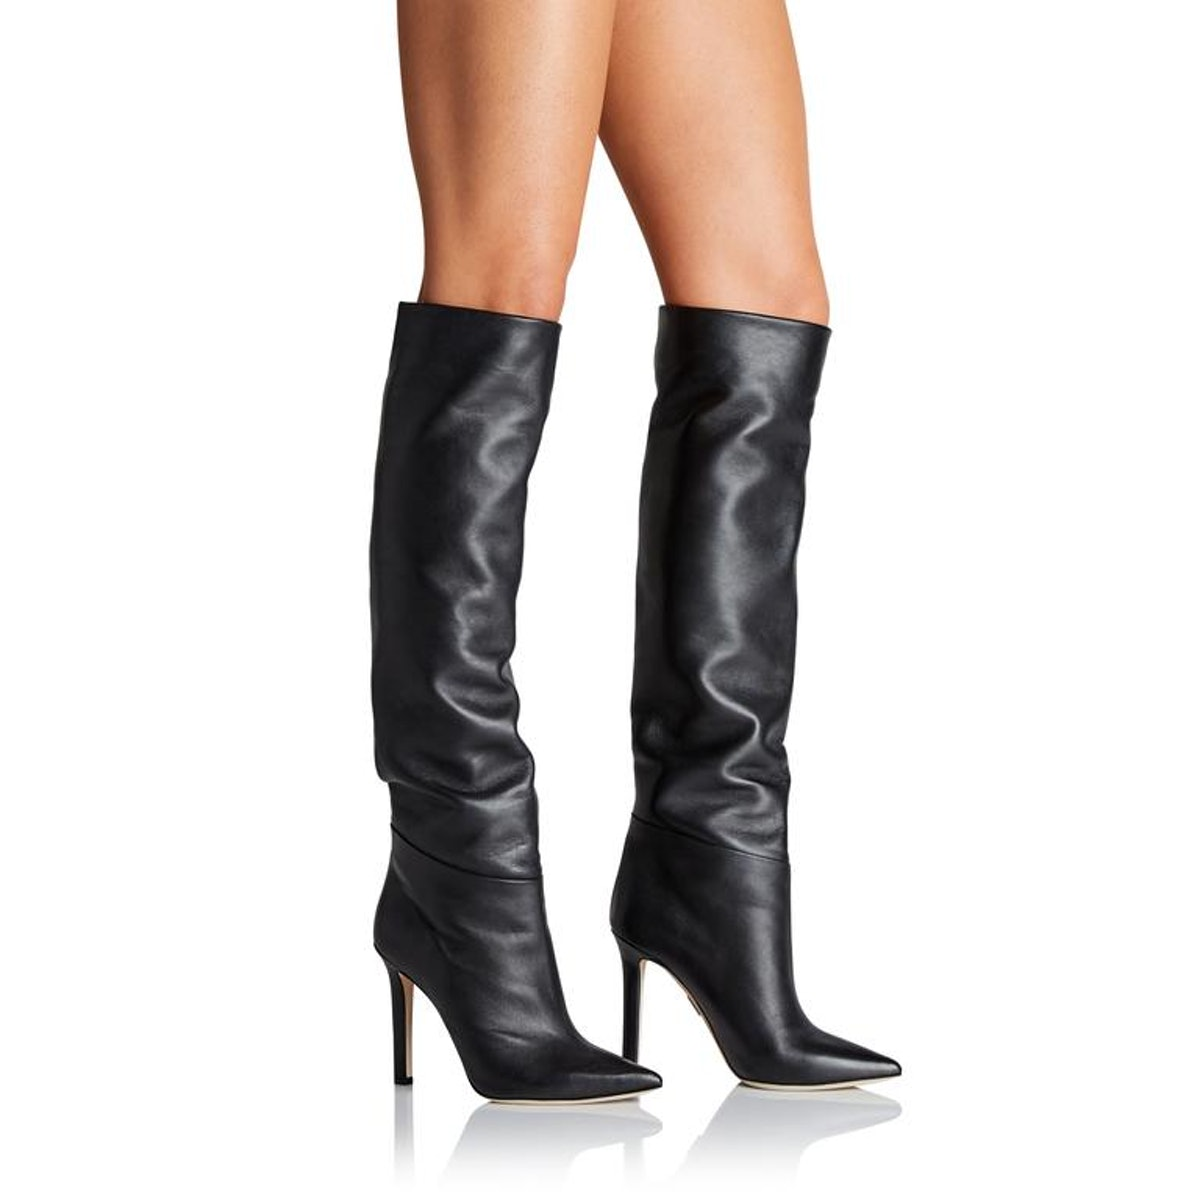 Knee High Boots in Black Nappa